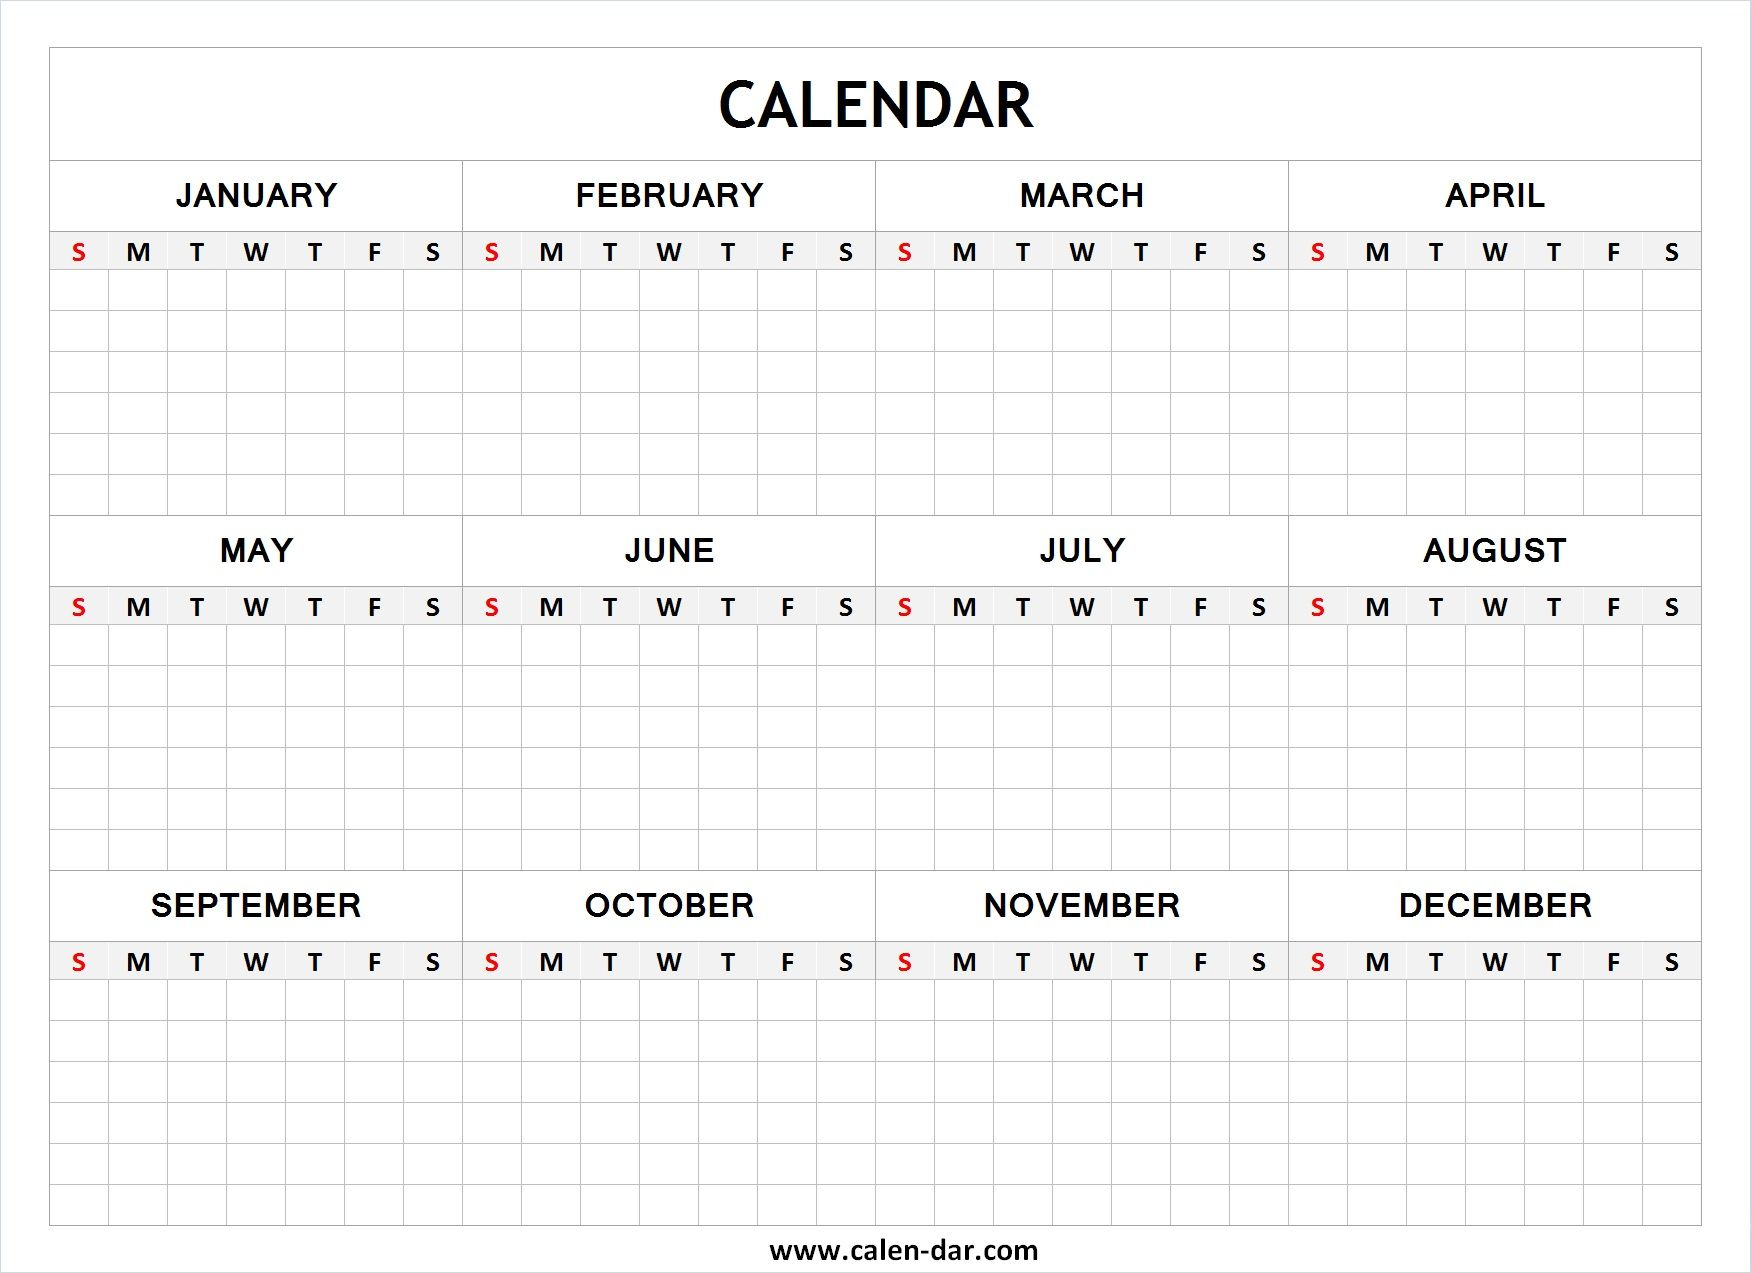 Blank Year Calendar | Blank Calendar | Printable Yearly Calendar regarding Blank Printable Calendars Yearly